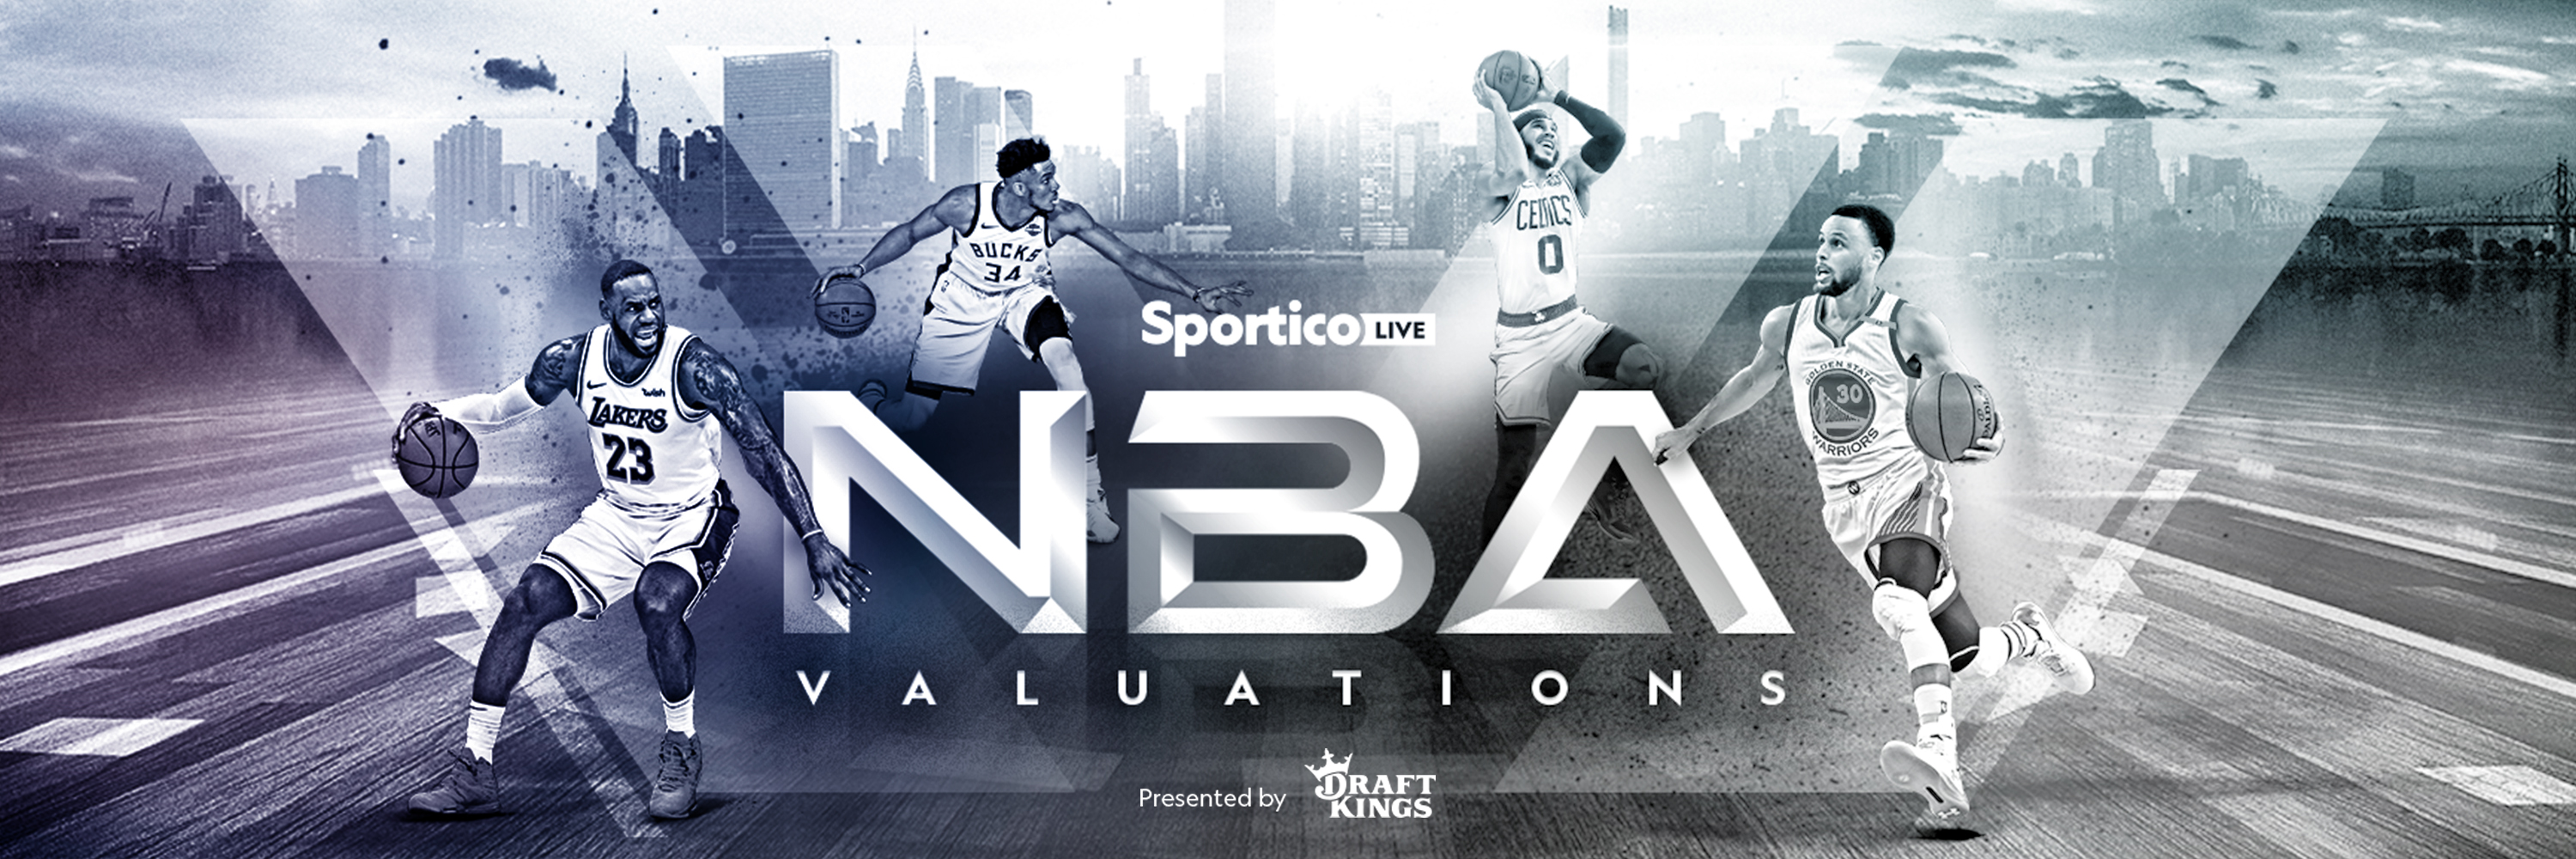 Planet 365 live betting nba in play betting australia map